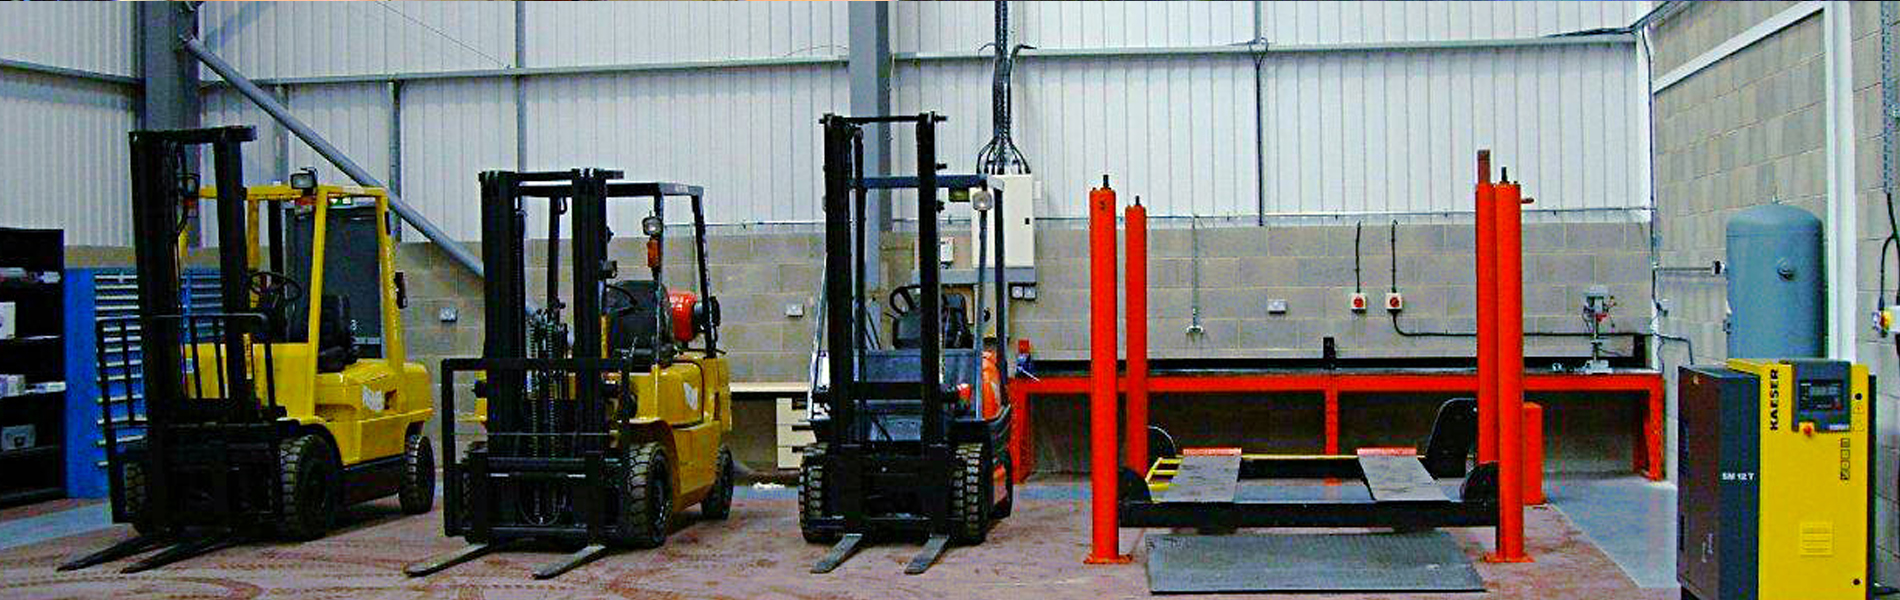 fork lift truck servicing and repairs